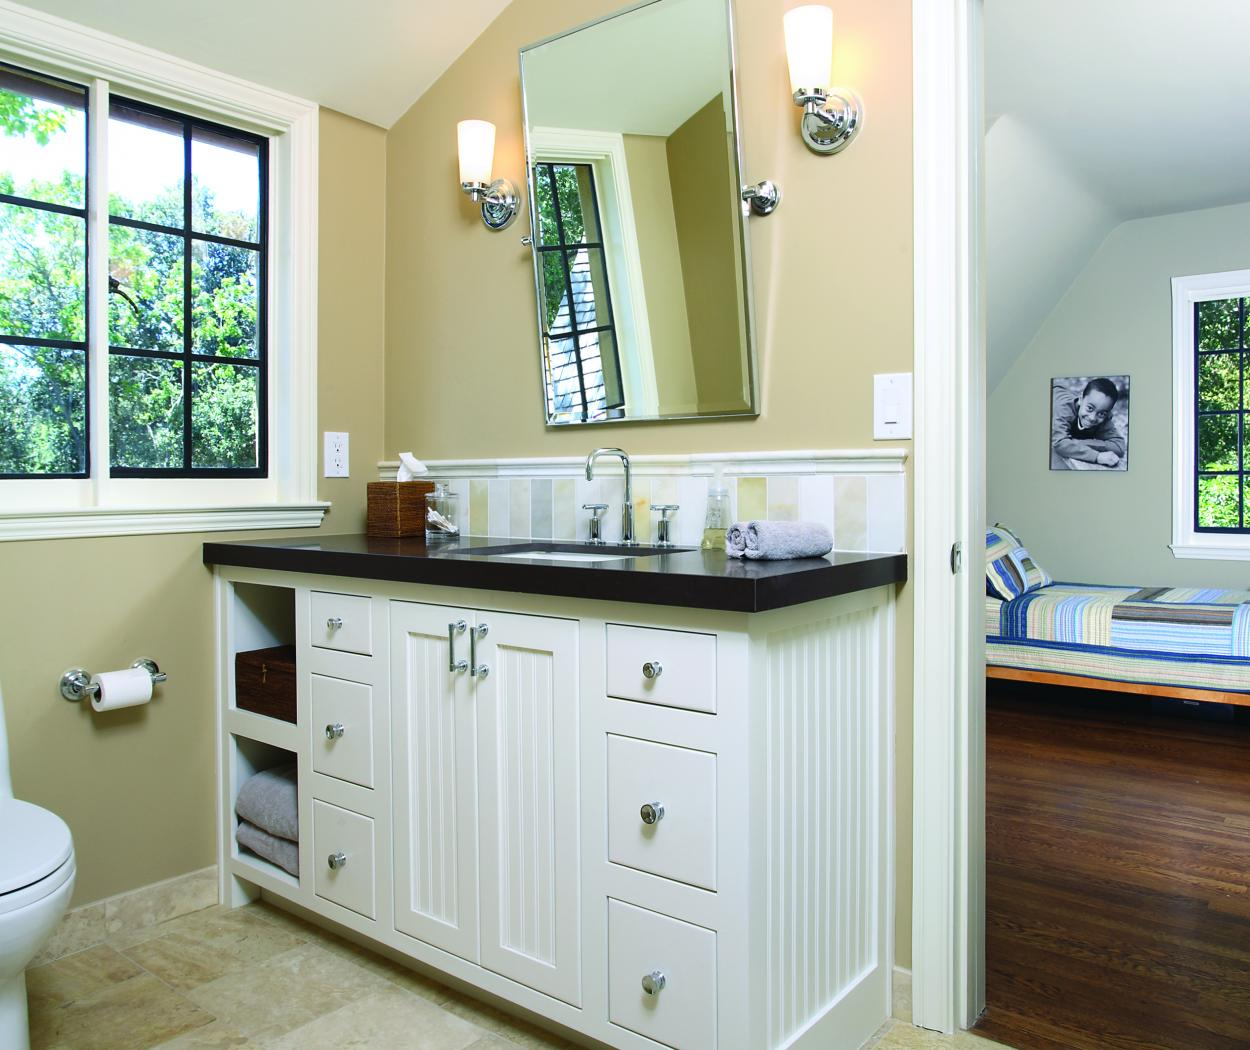 White Transitional Bathroom Vanity with Beadboard Doors, Open Shelves and Chrome Hardware